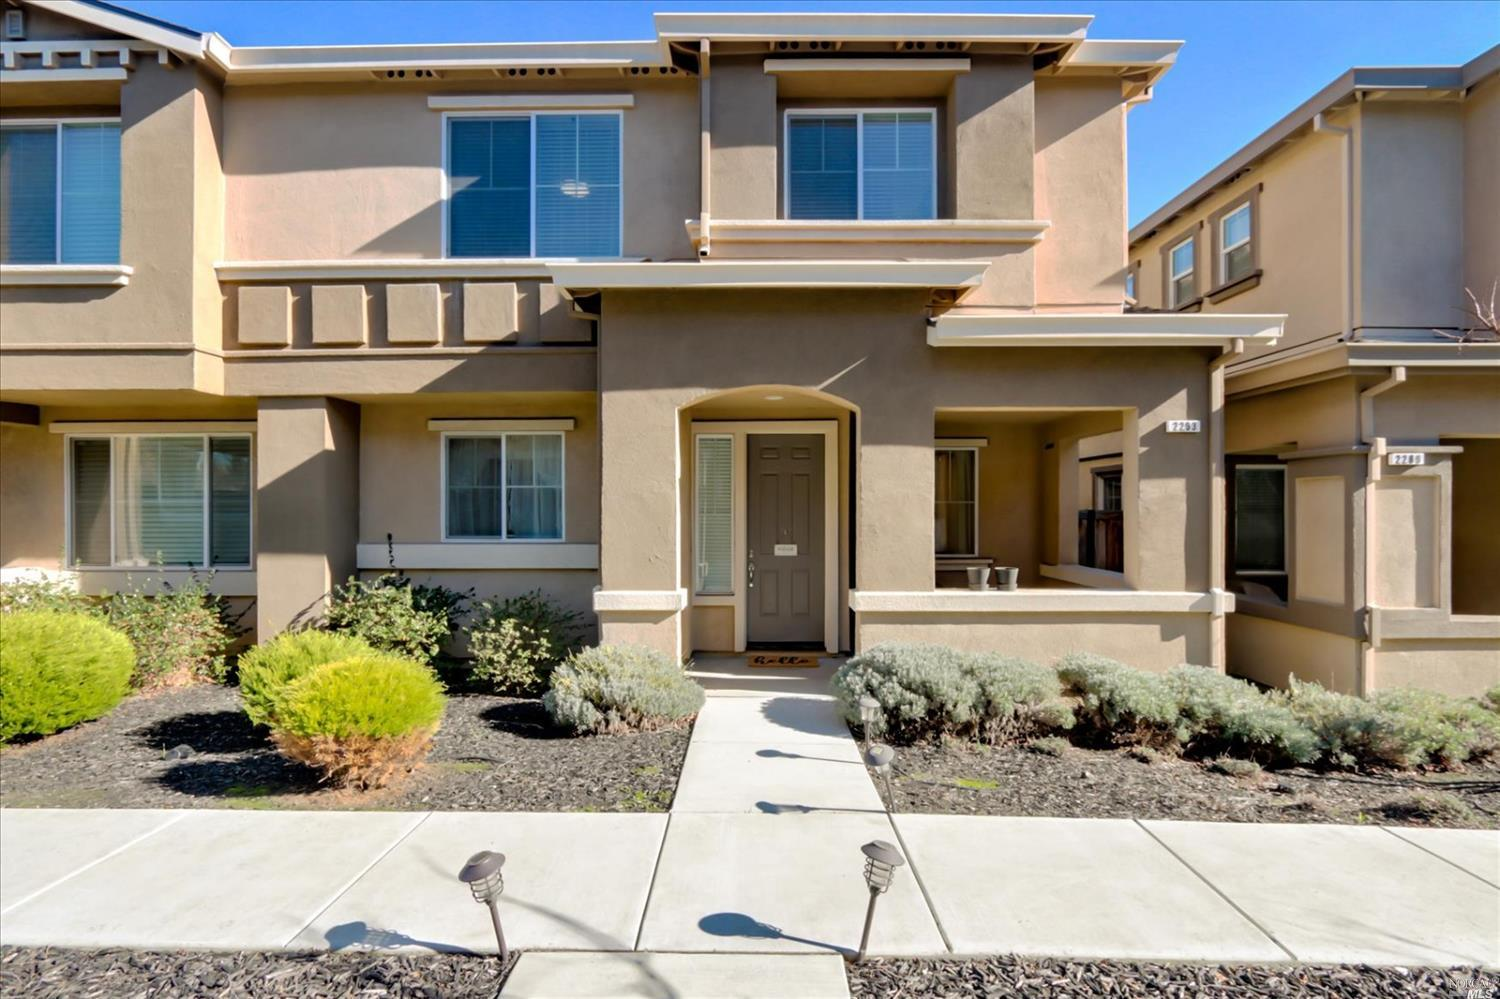 Come and check out this gorgeous home with an open floor plan concept. The 2 car garage is attached,